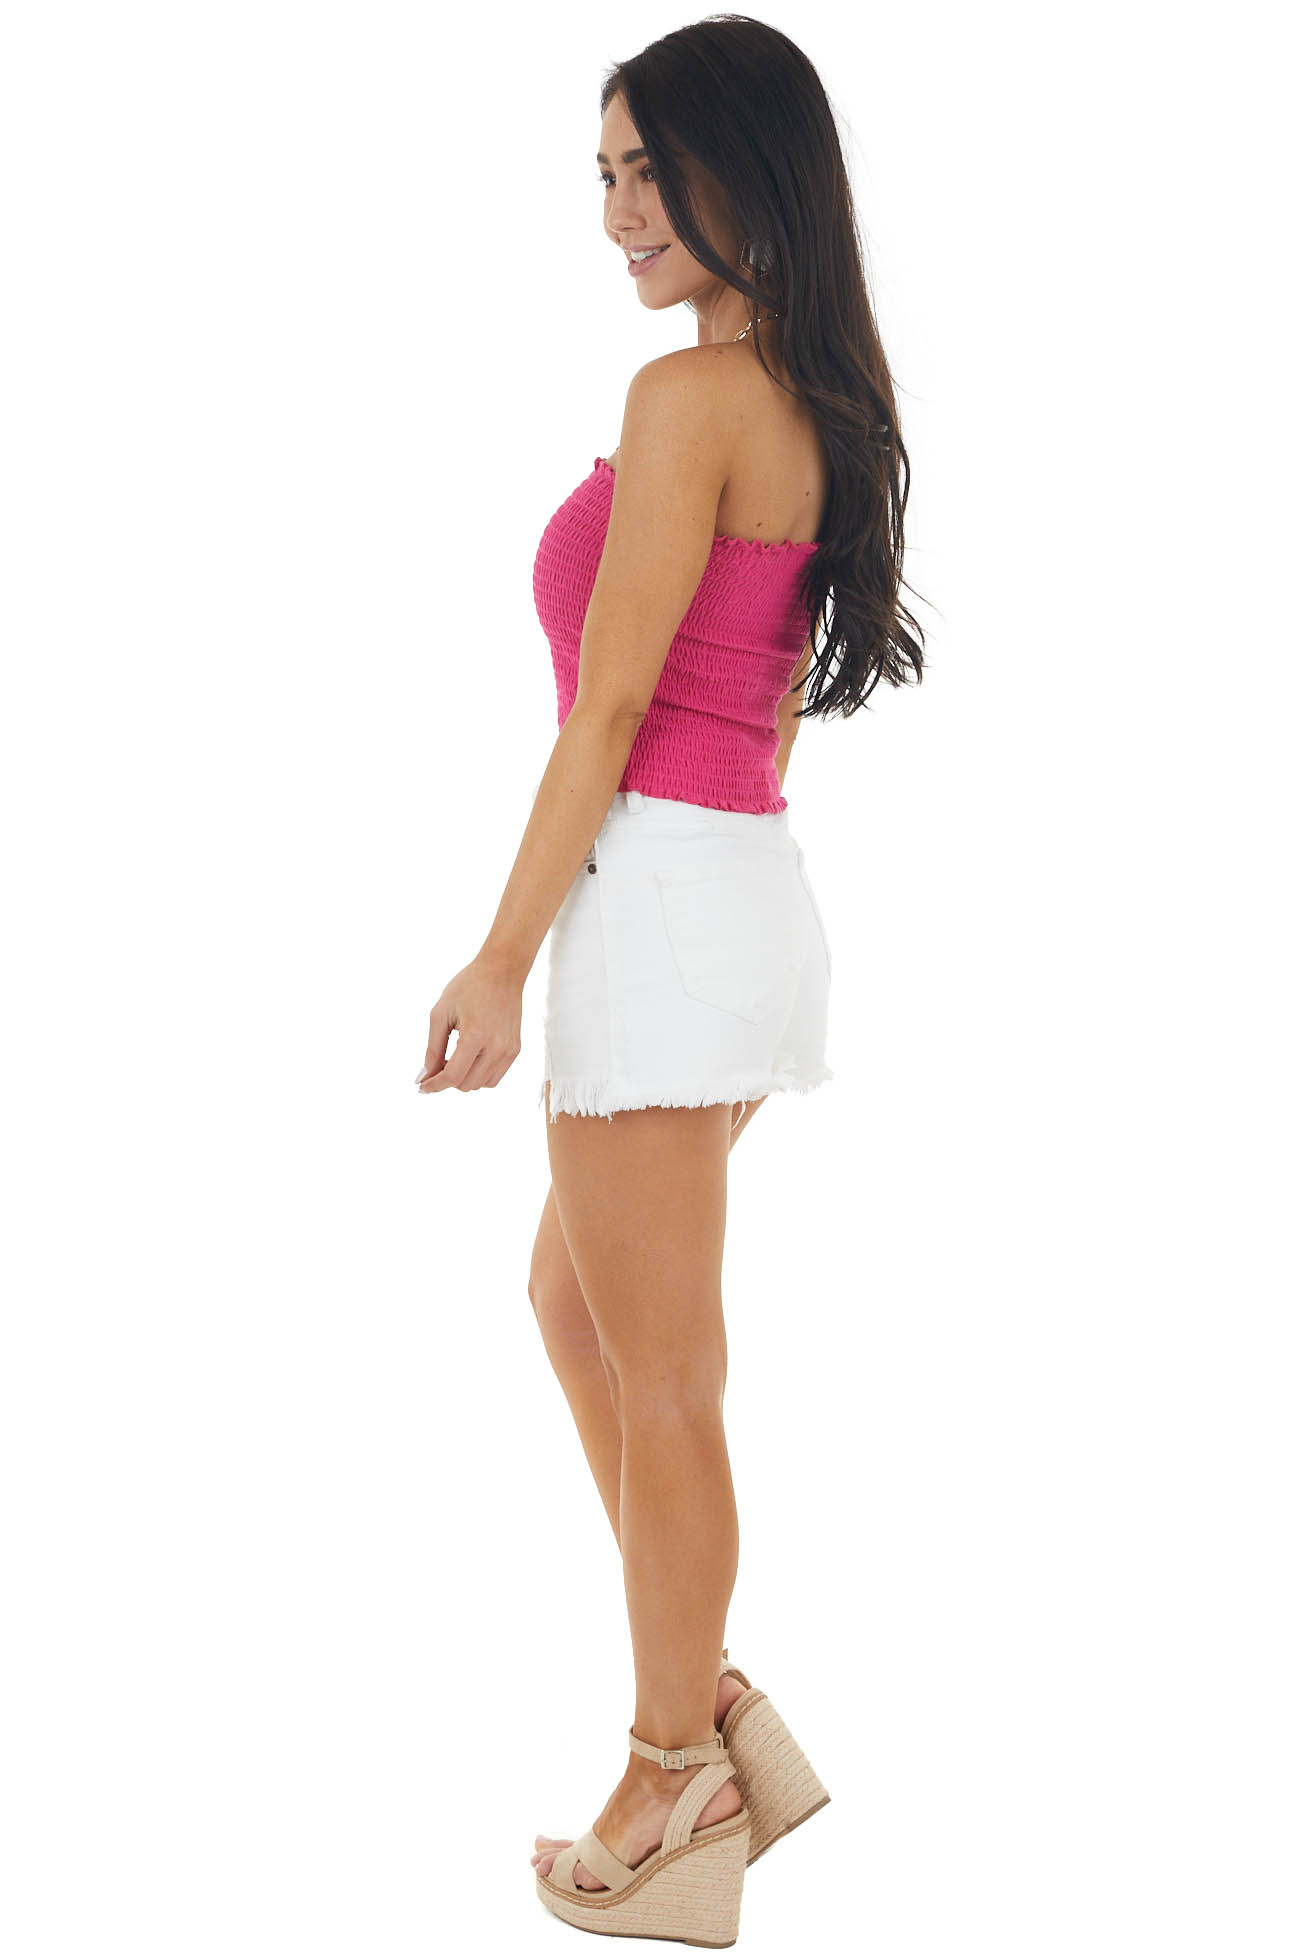 Fuchsia Smocked Strapless Bandeau Top with Ruffled Hemlines